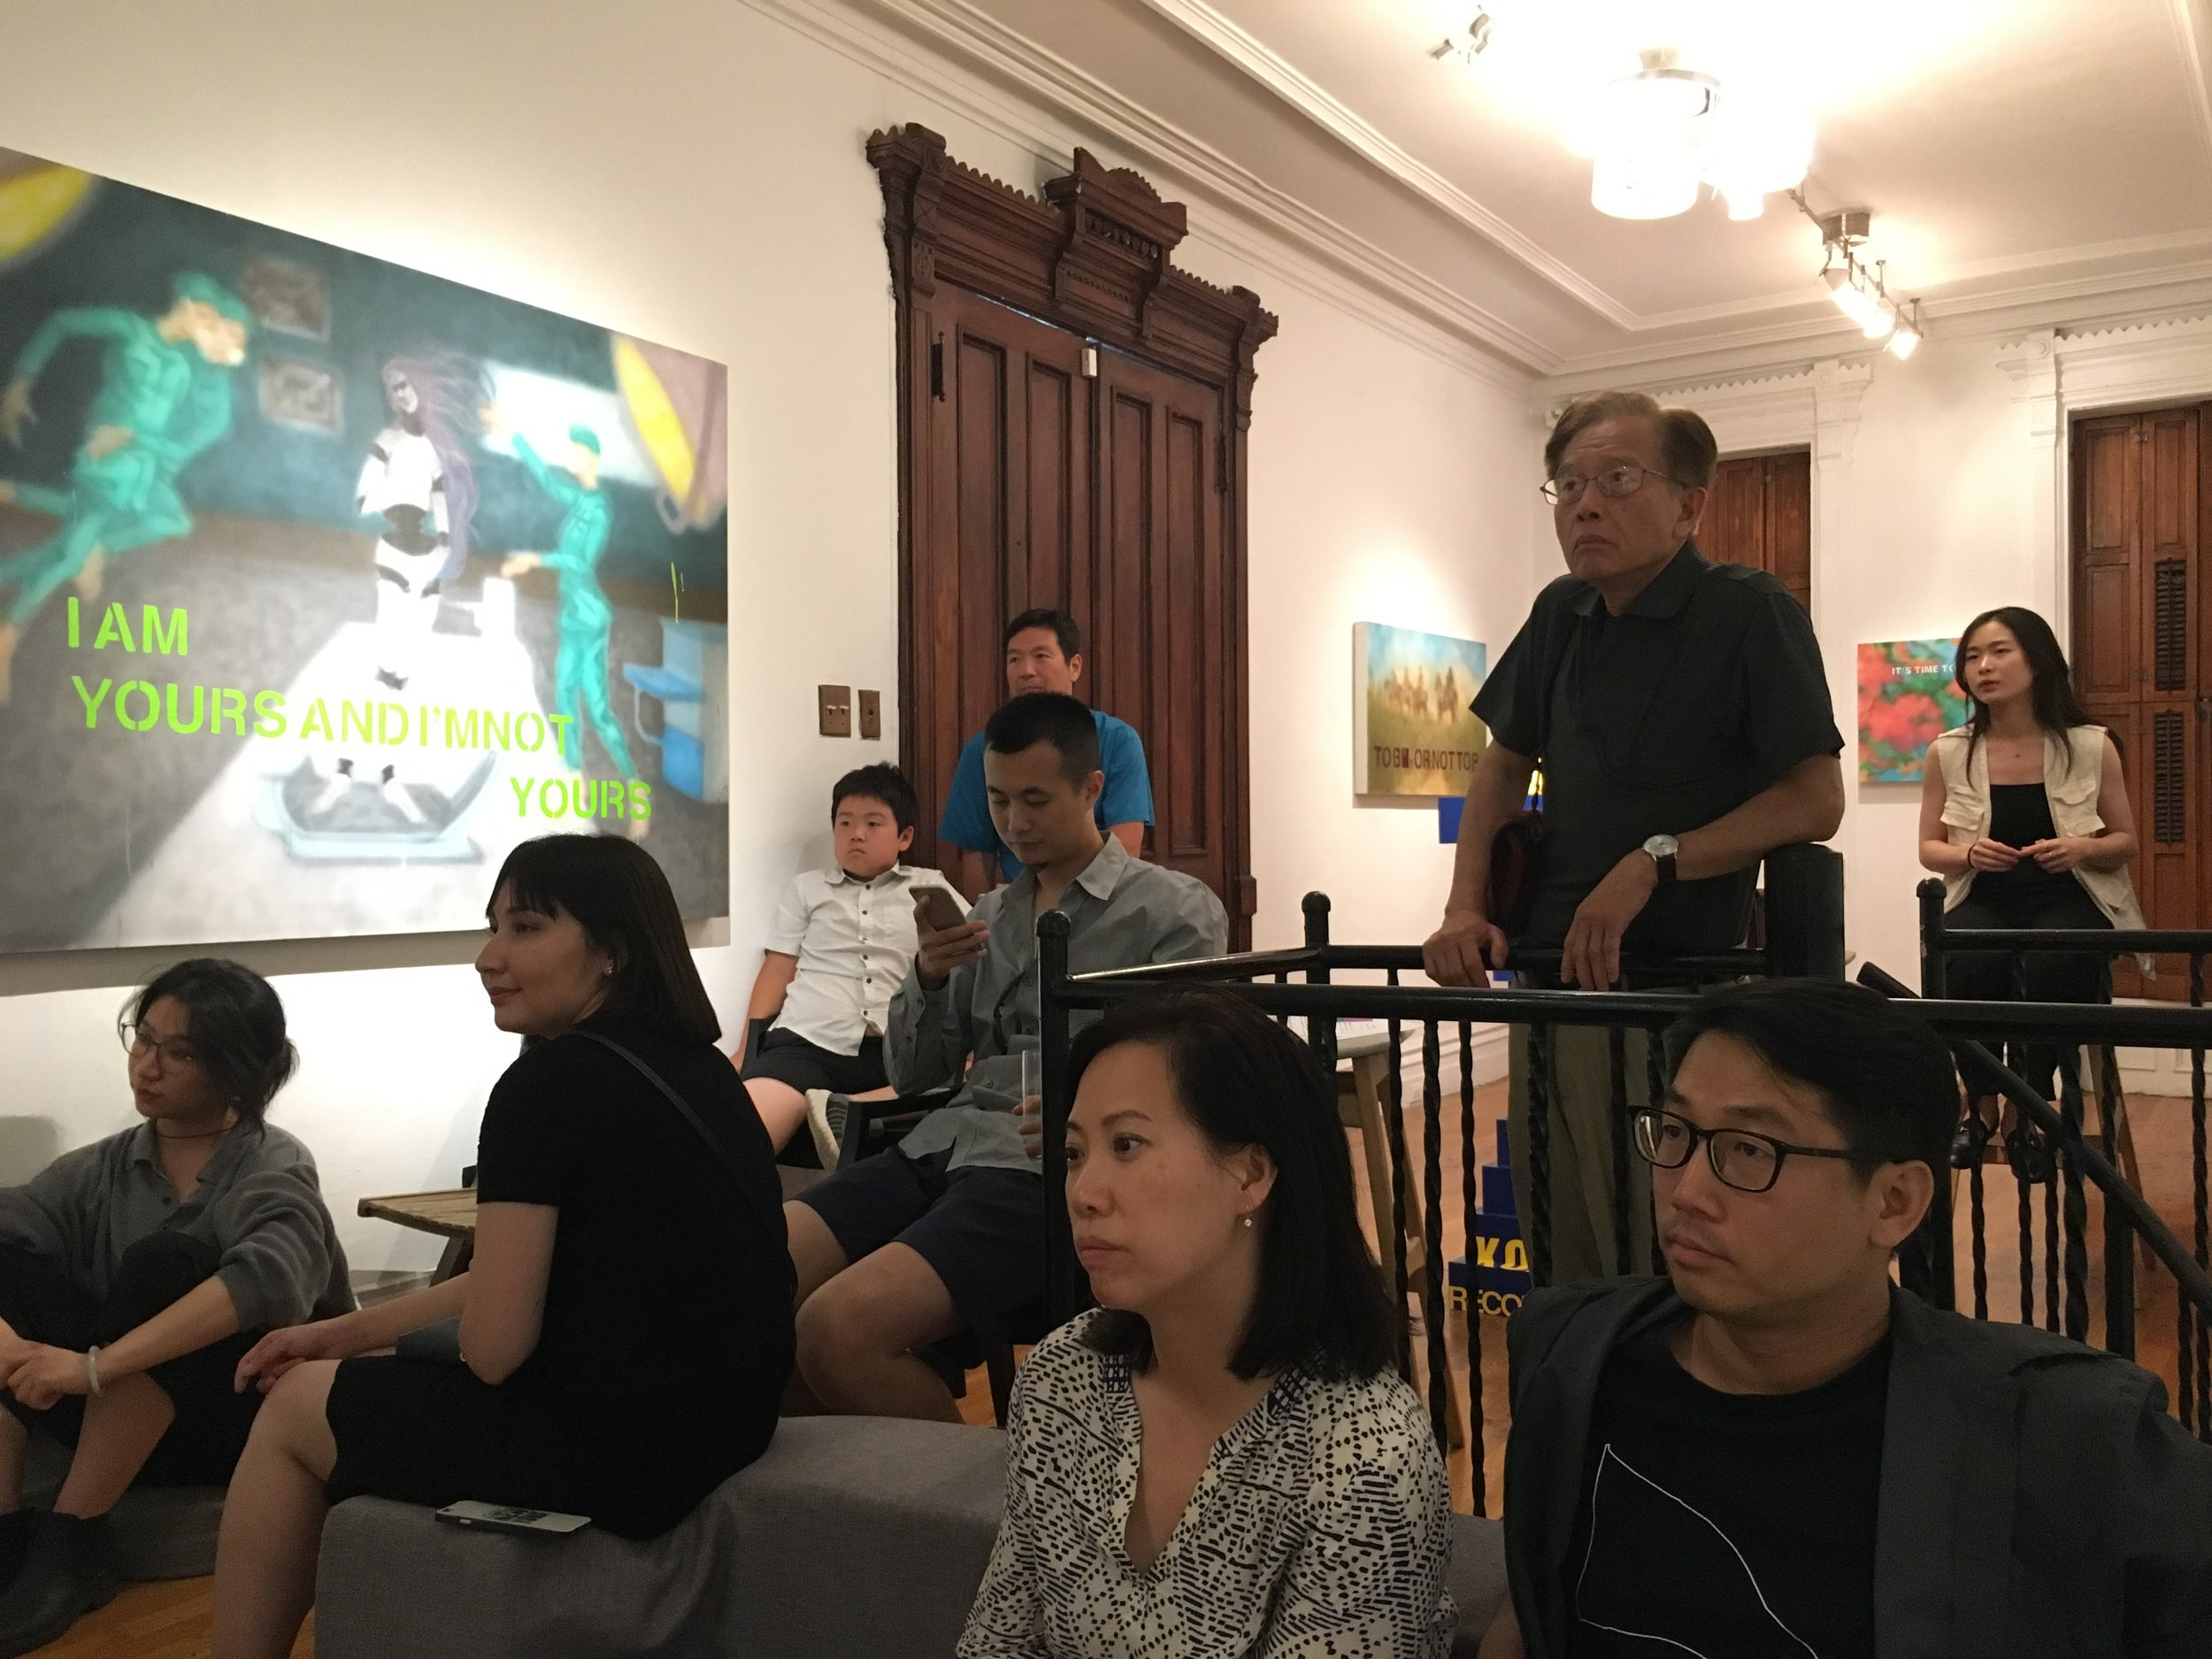 Stories of Space : Independent Short Films Night, photograph by Siyuan Tan, courtesy Fou Gallery.